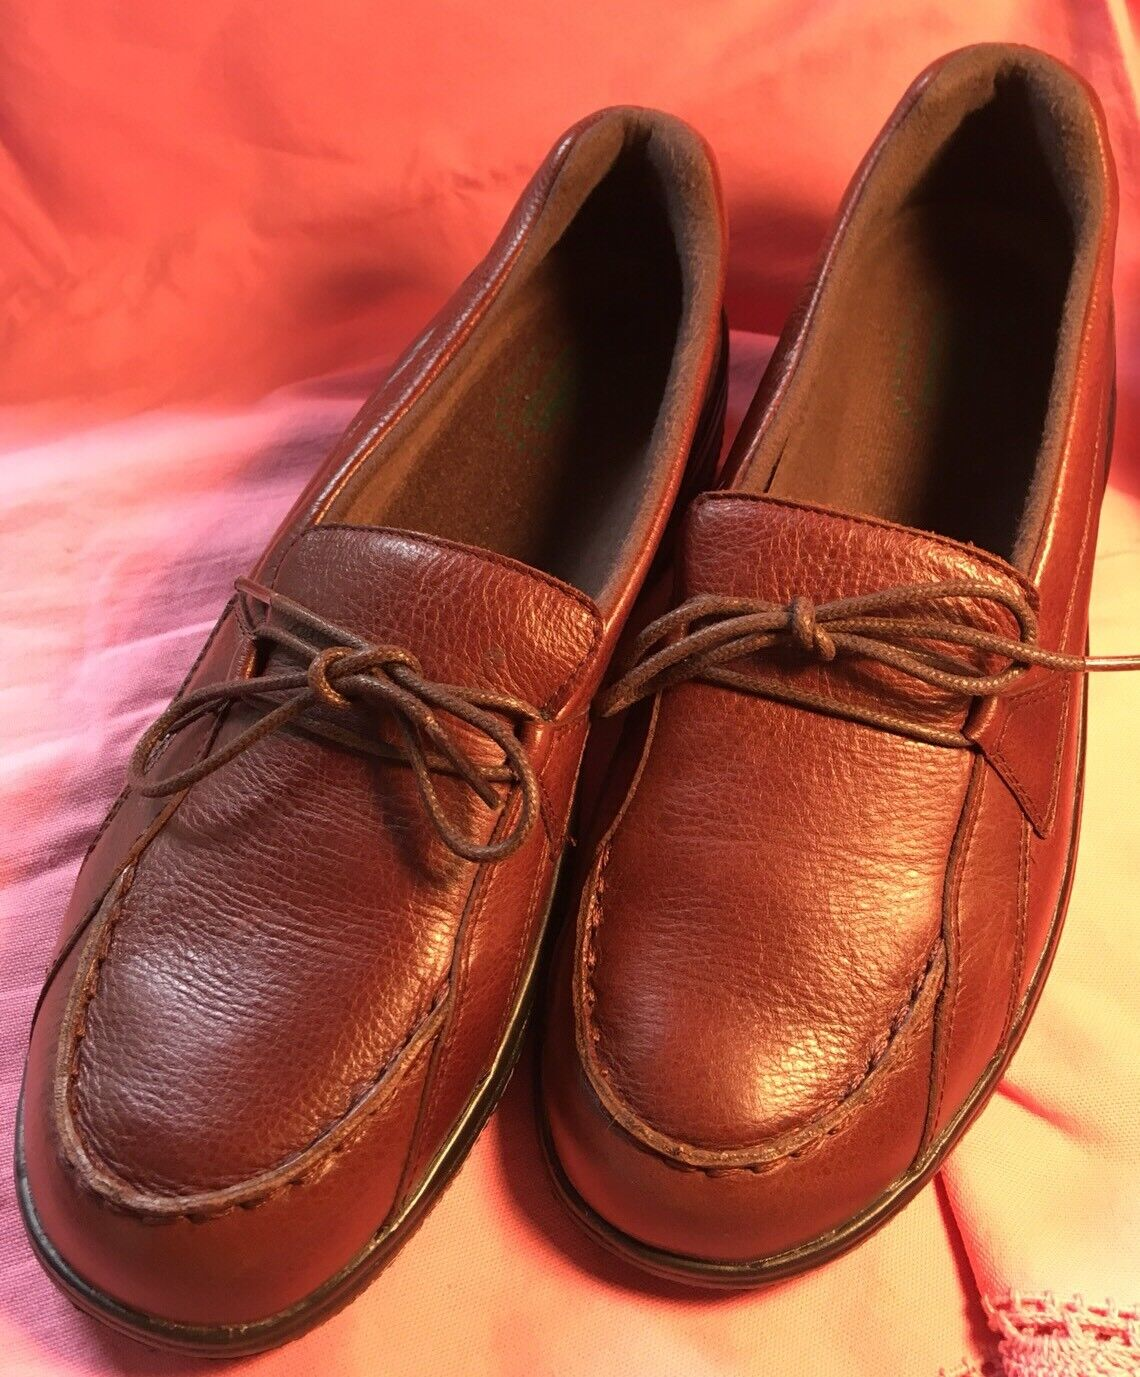 Propet 10 Brown Shock Absorber Slip On Leather Walking shoes NWOT Light Weight